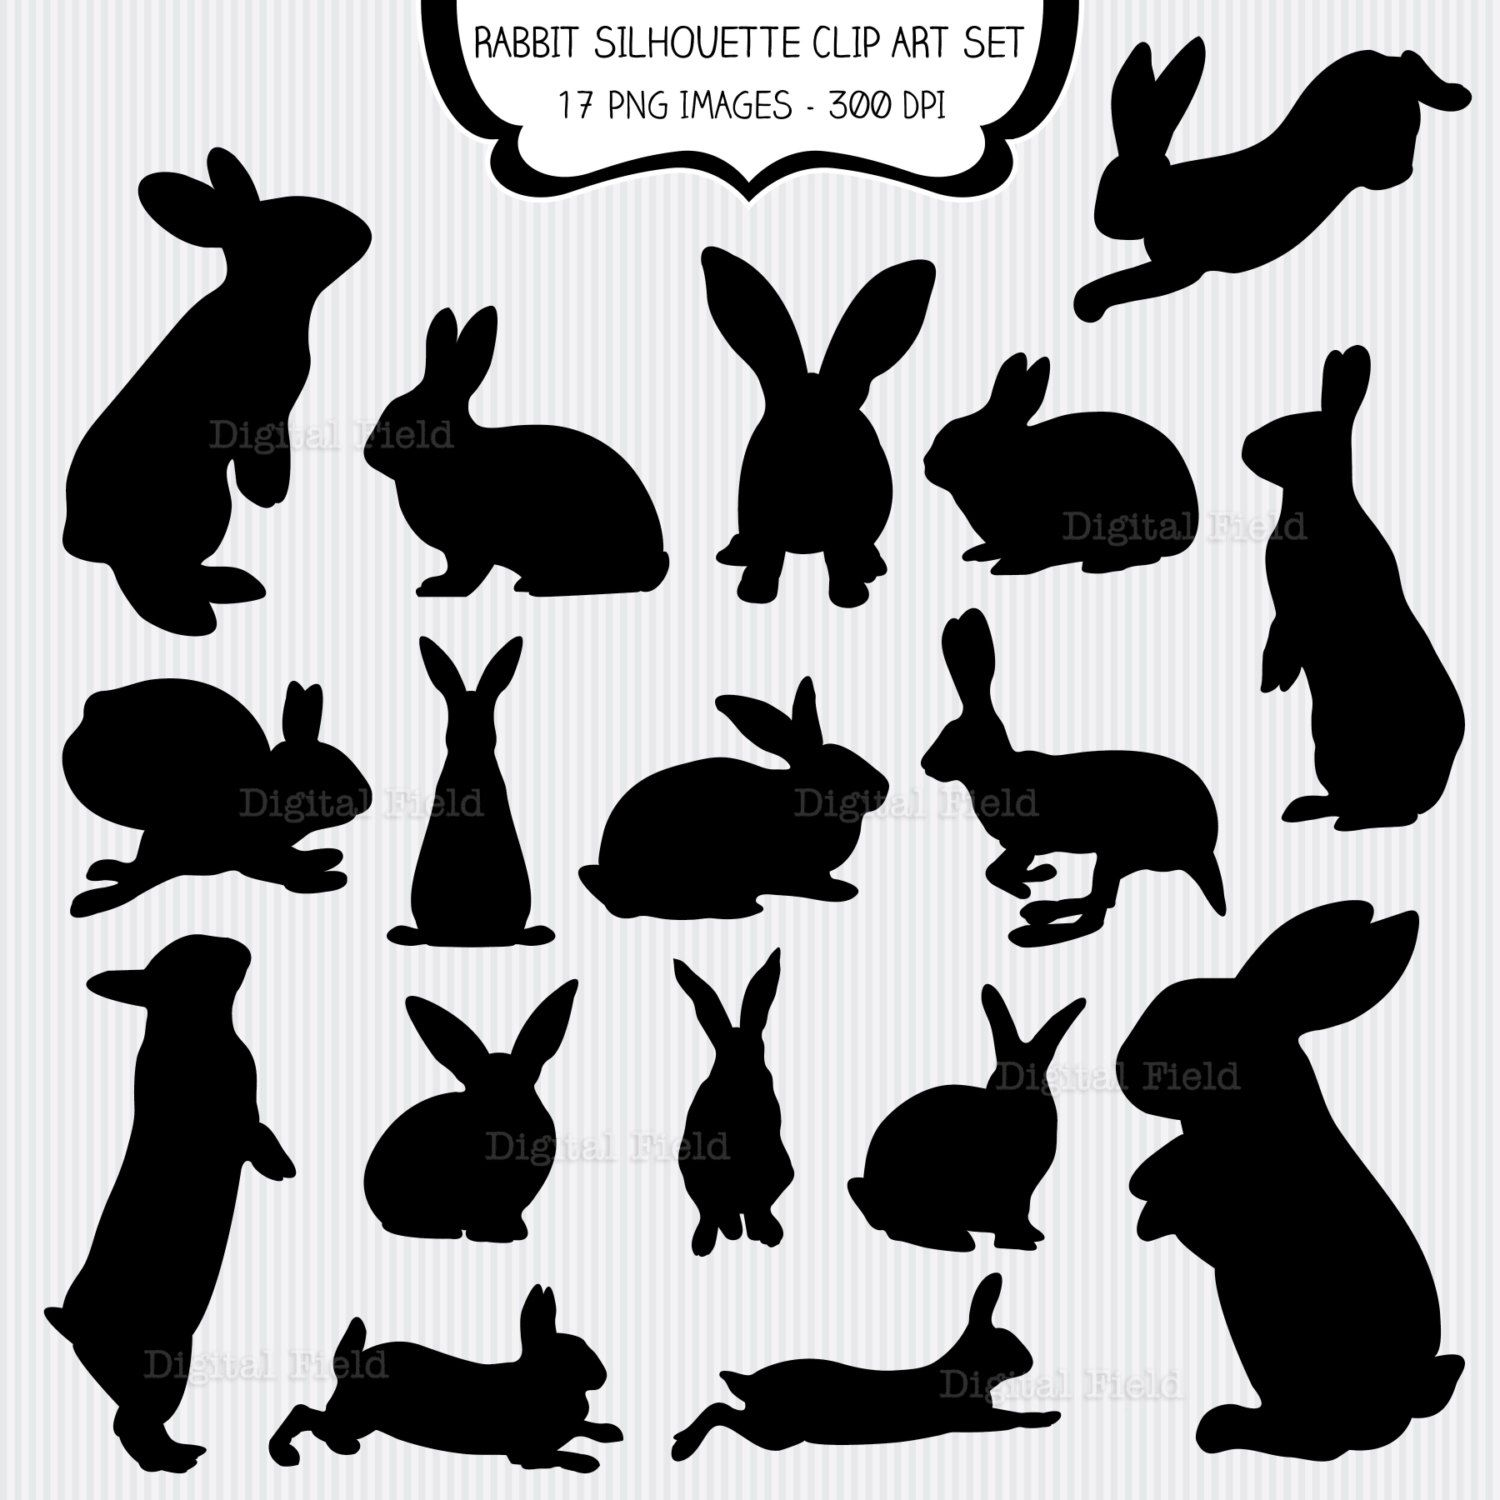 Rabbit Silhouette Clip Art Set Easter Bunny Printable Digital Clipart Instant Download By Digitalf Rabbit Silhouette Silhouette Clip Art Bunny Silhouette